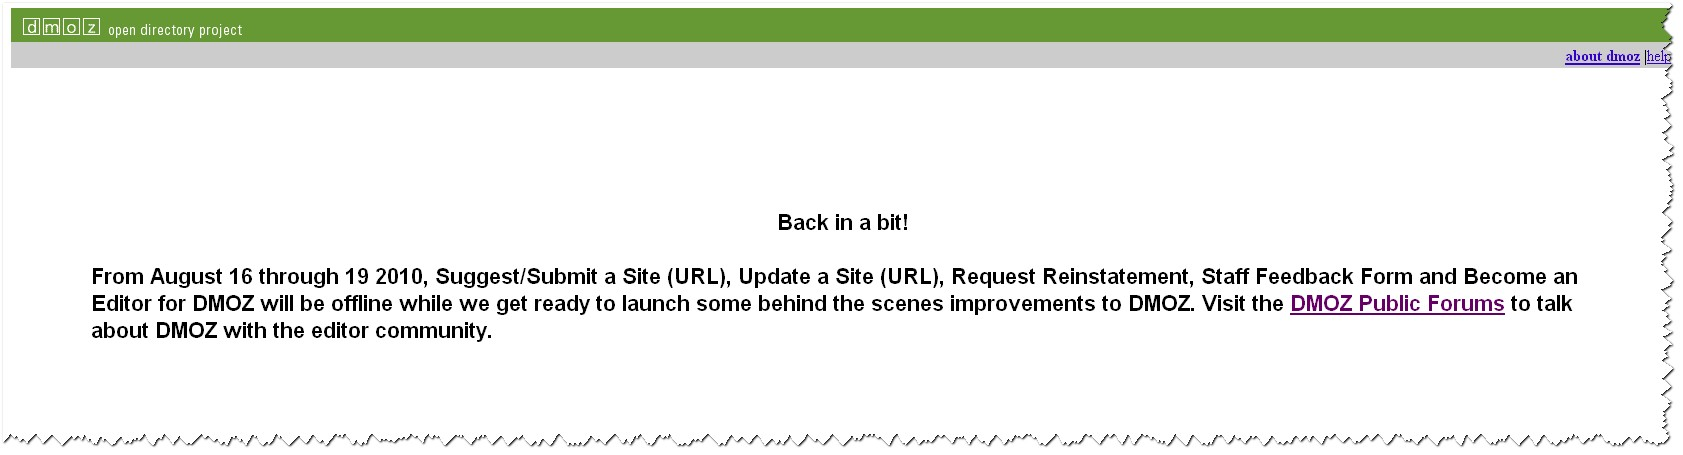 DMoz error message